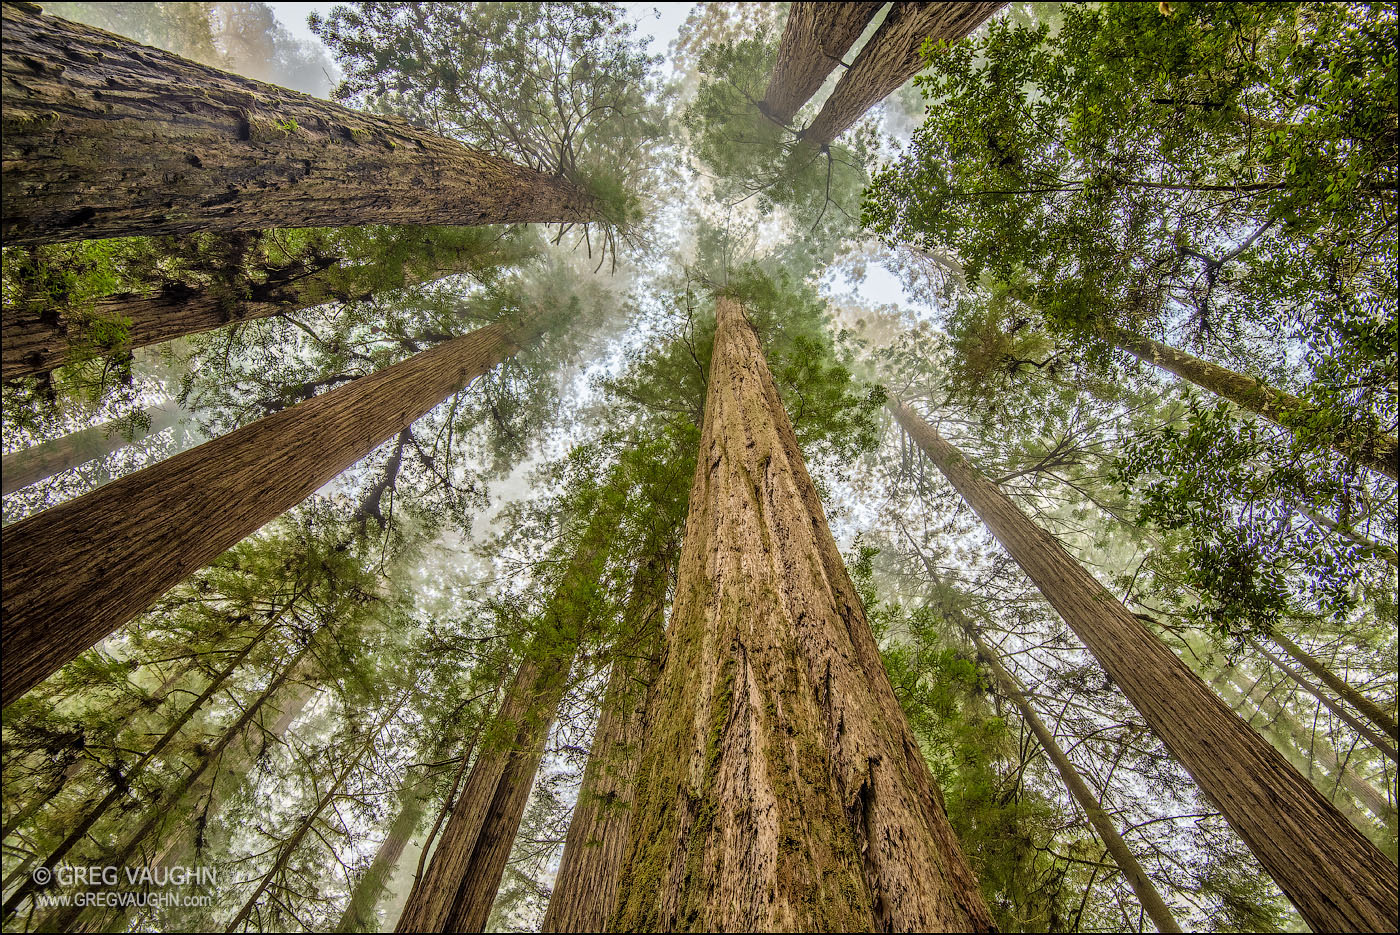 Looking up through a forest of tall redwood trees